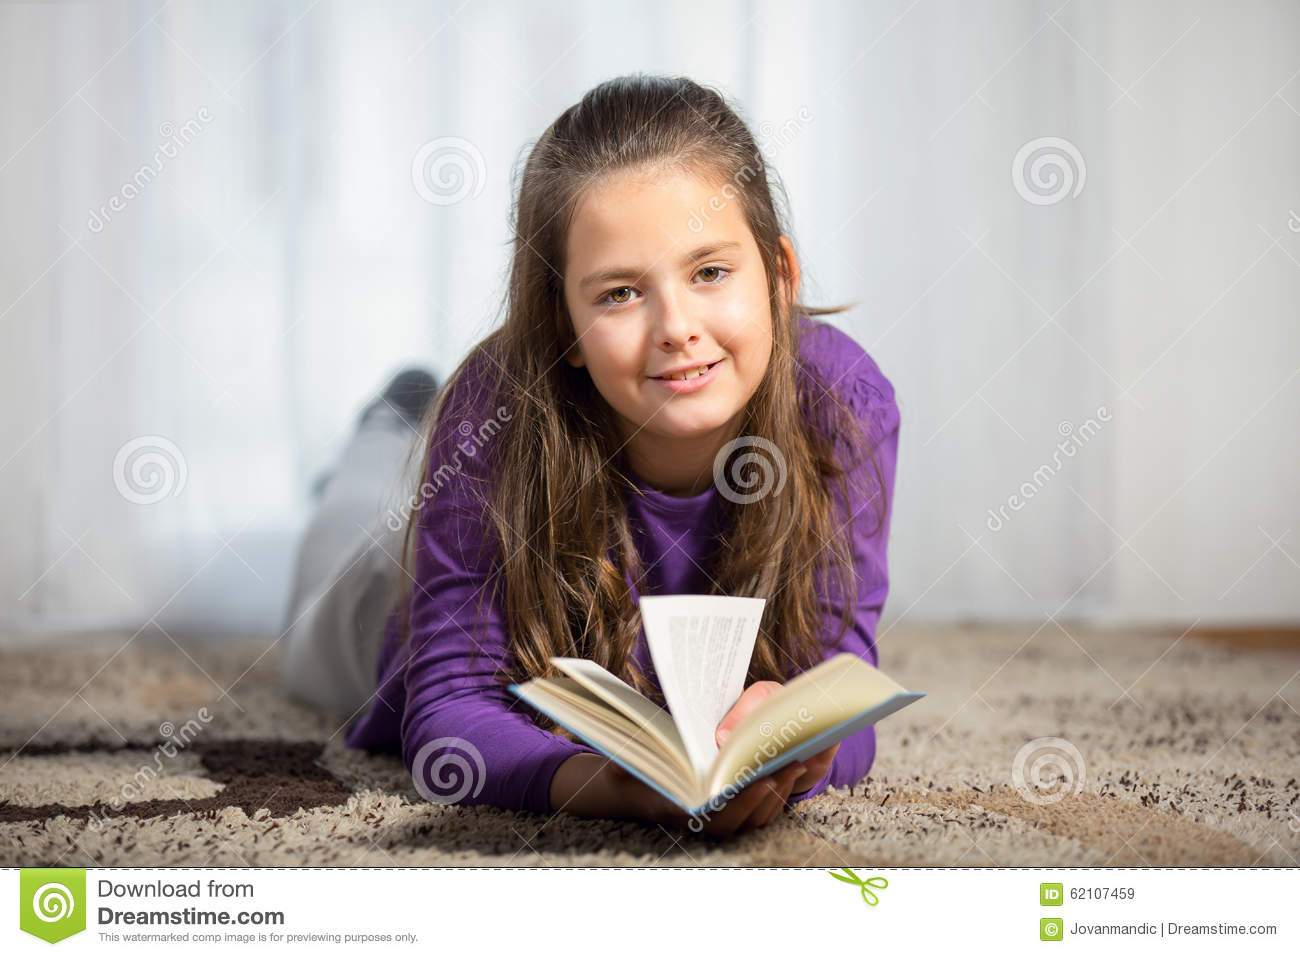 Ten Years Old Girl With A Books Stock Image - Image of